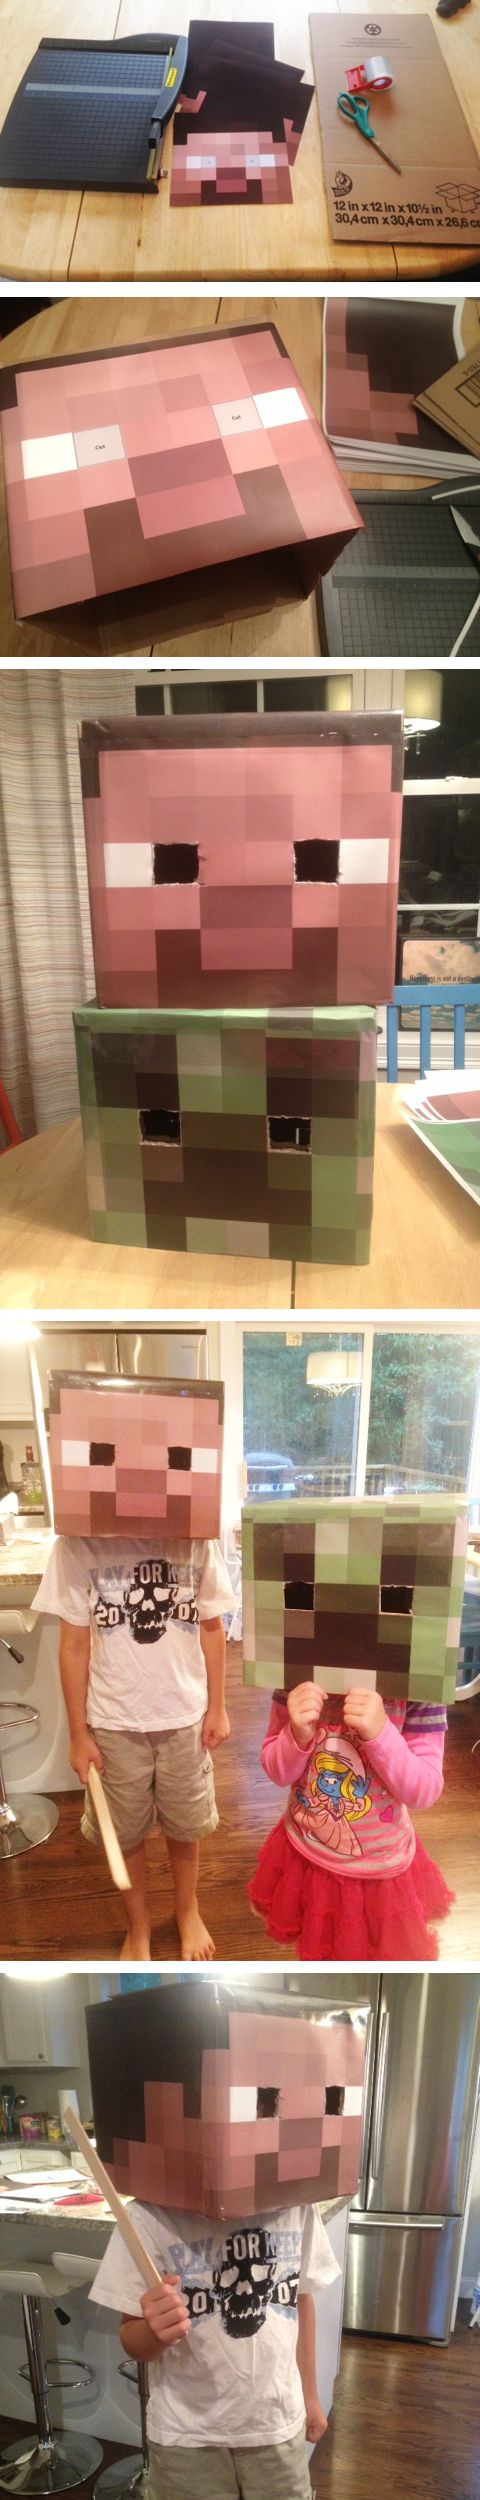 How to Make DIY Minecraft Steve & Creeper Halloween Costumes | Coupon Karma